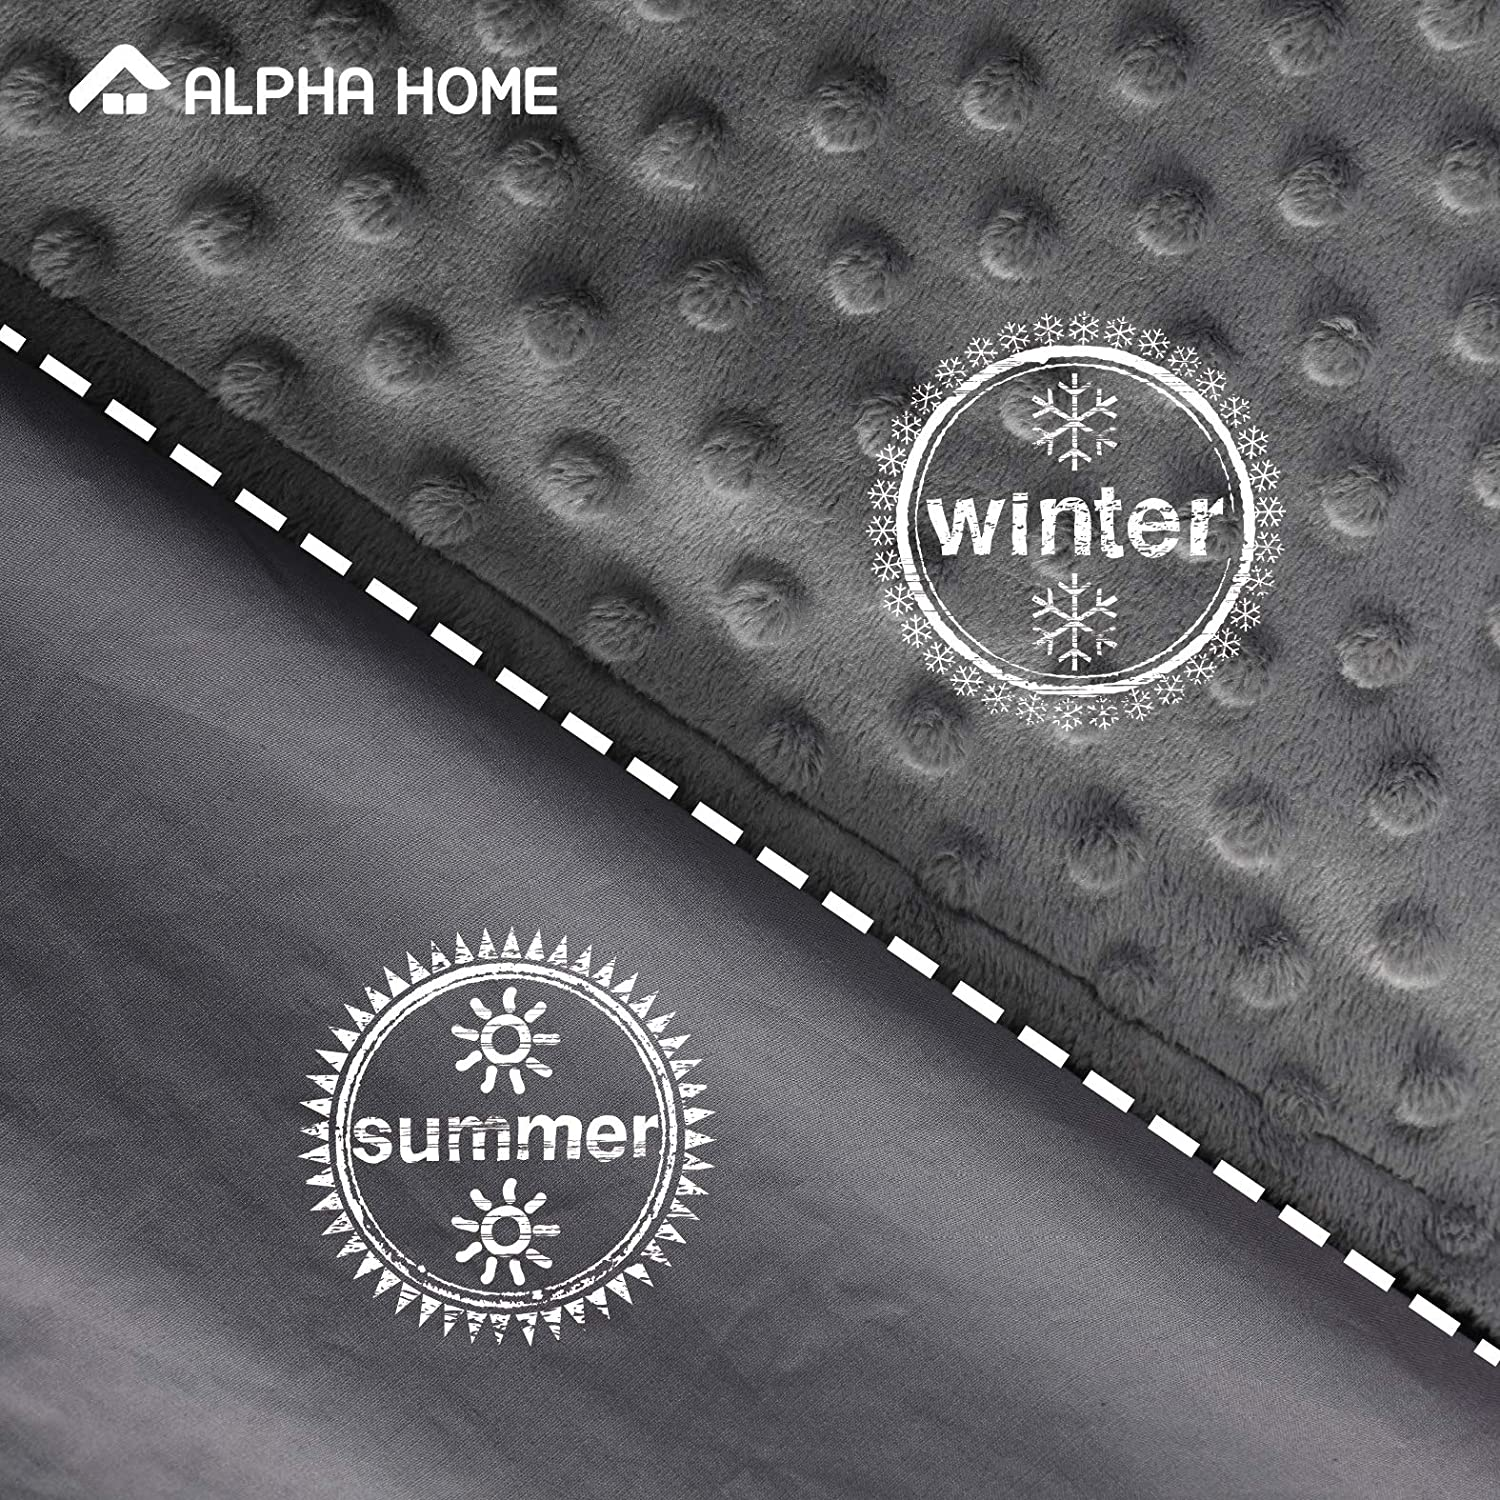 ALPHA HOME Removable Duvet Cover for Weighted Blanket 36x48 Reversible Design Cream